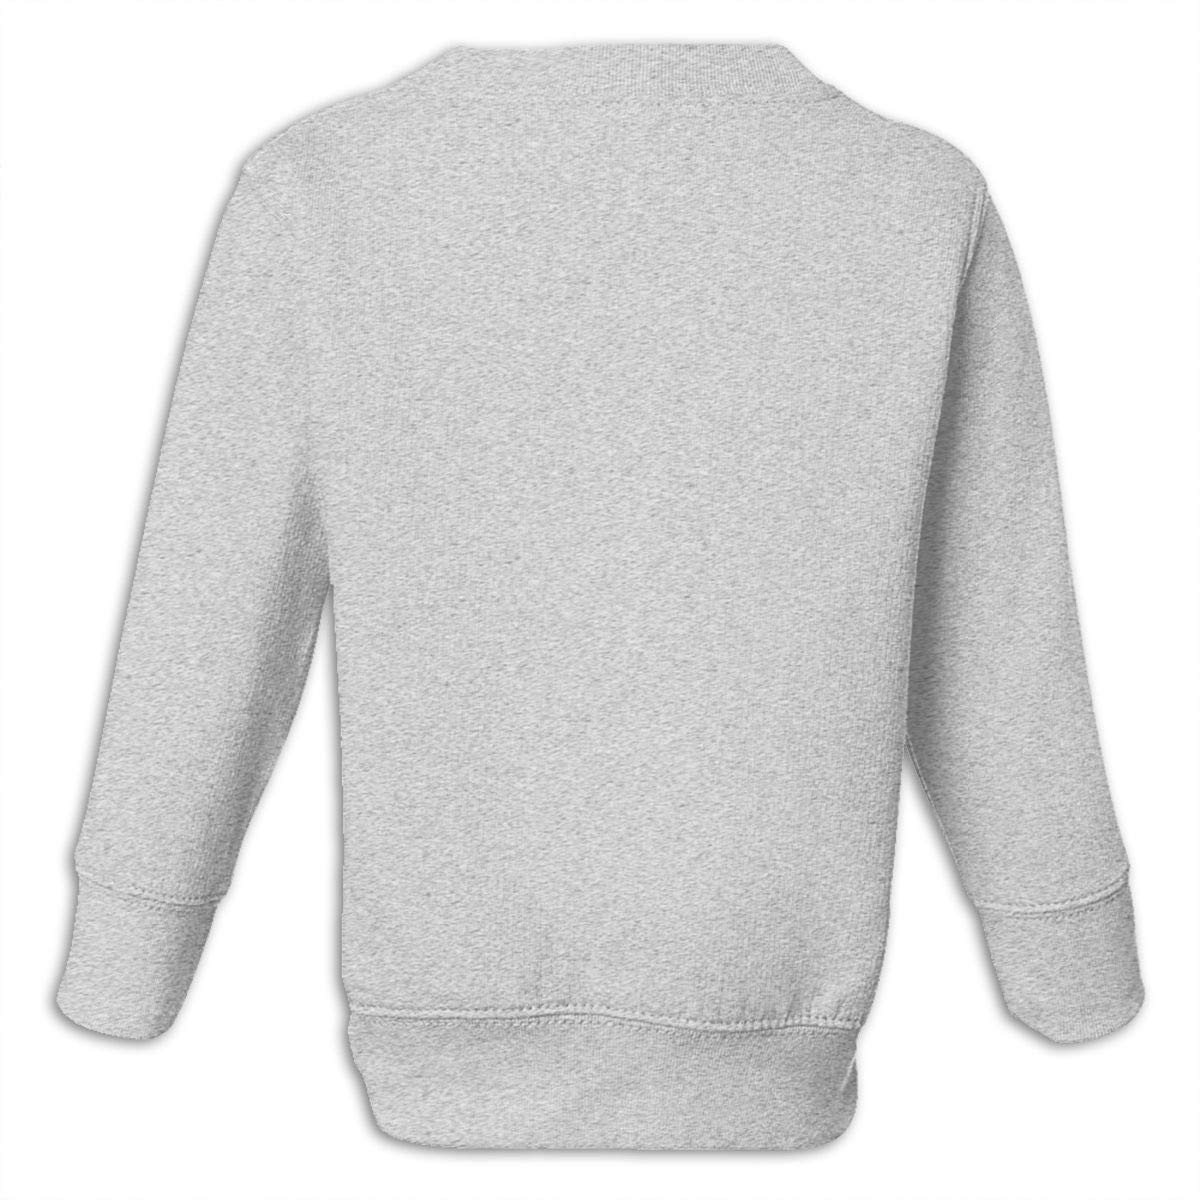 Yuliang Force Choke Girl Personality Sweater Gray